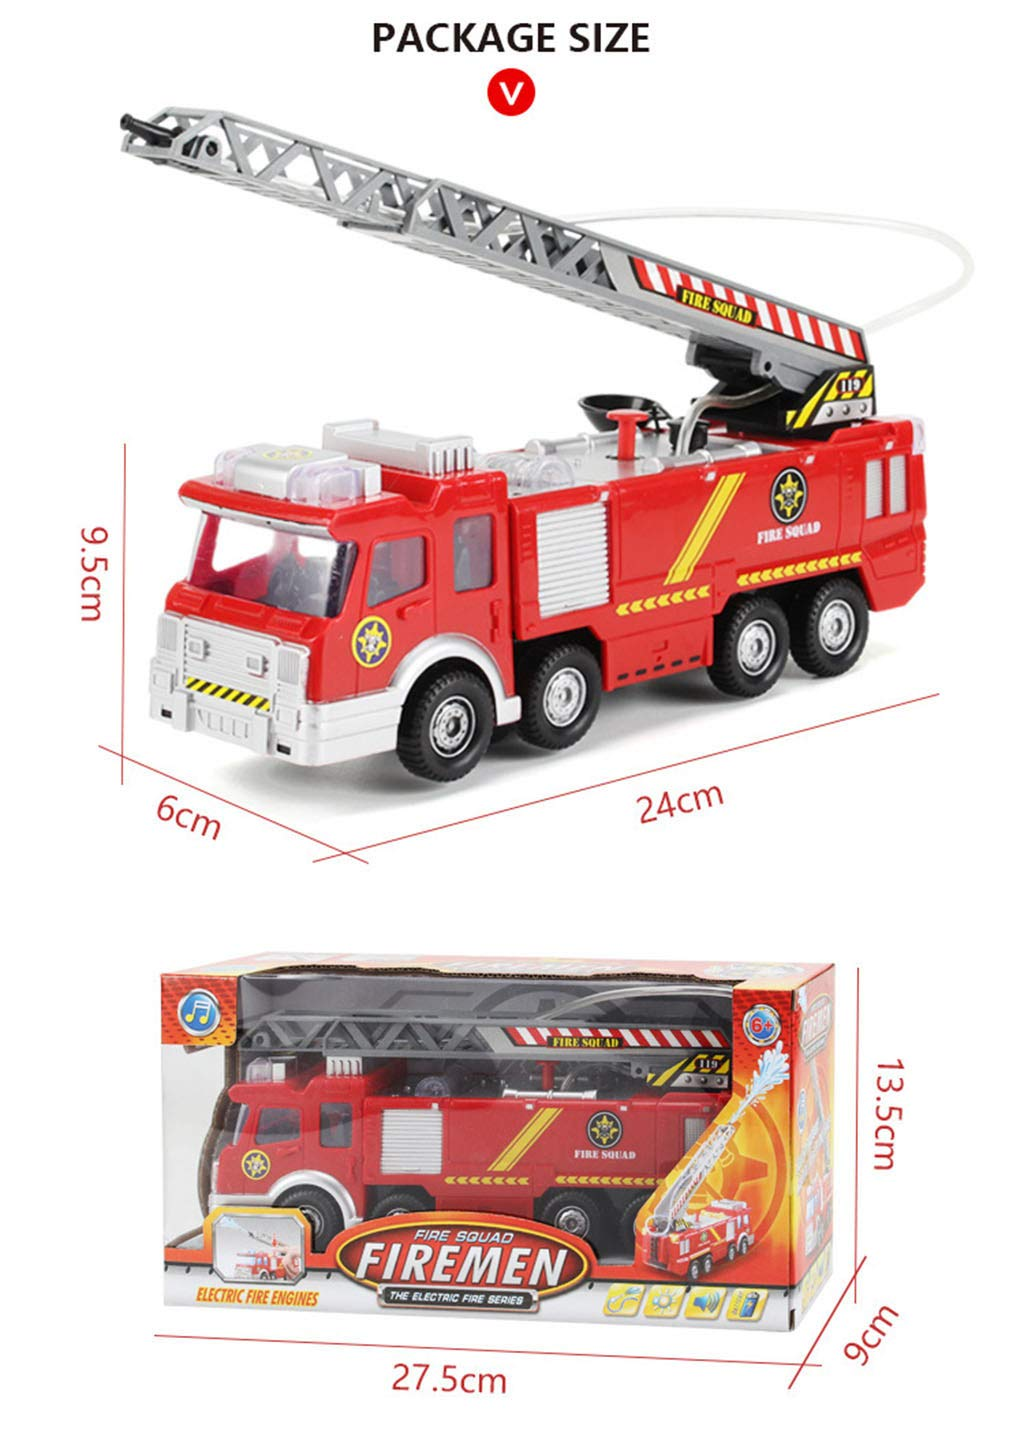 Fireman Sam Toy Truck Fire Truck Car With Music+led Boy Toy Educational Electronic Toys Color Box Online Discount Toys & Hobbies